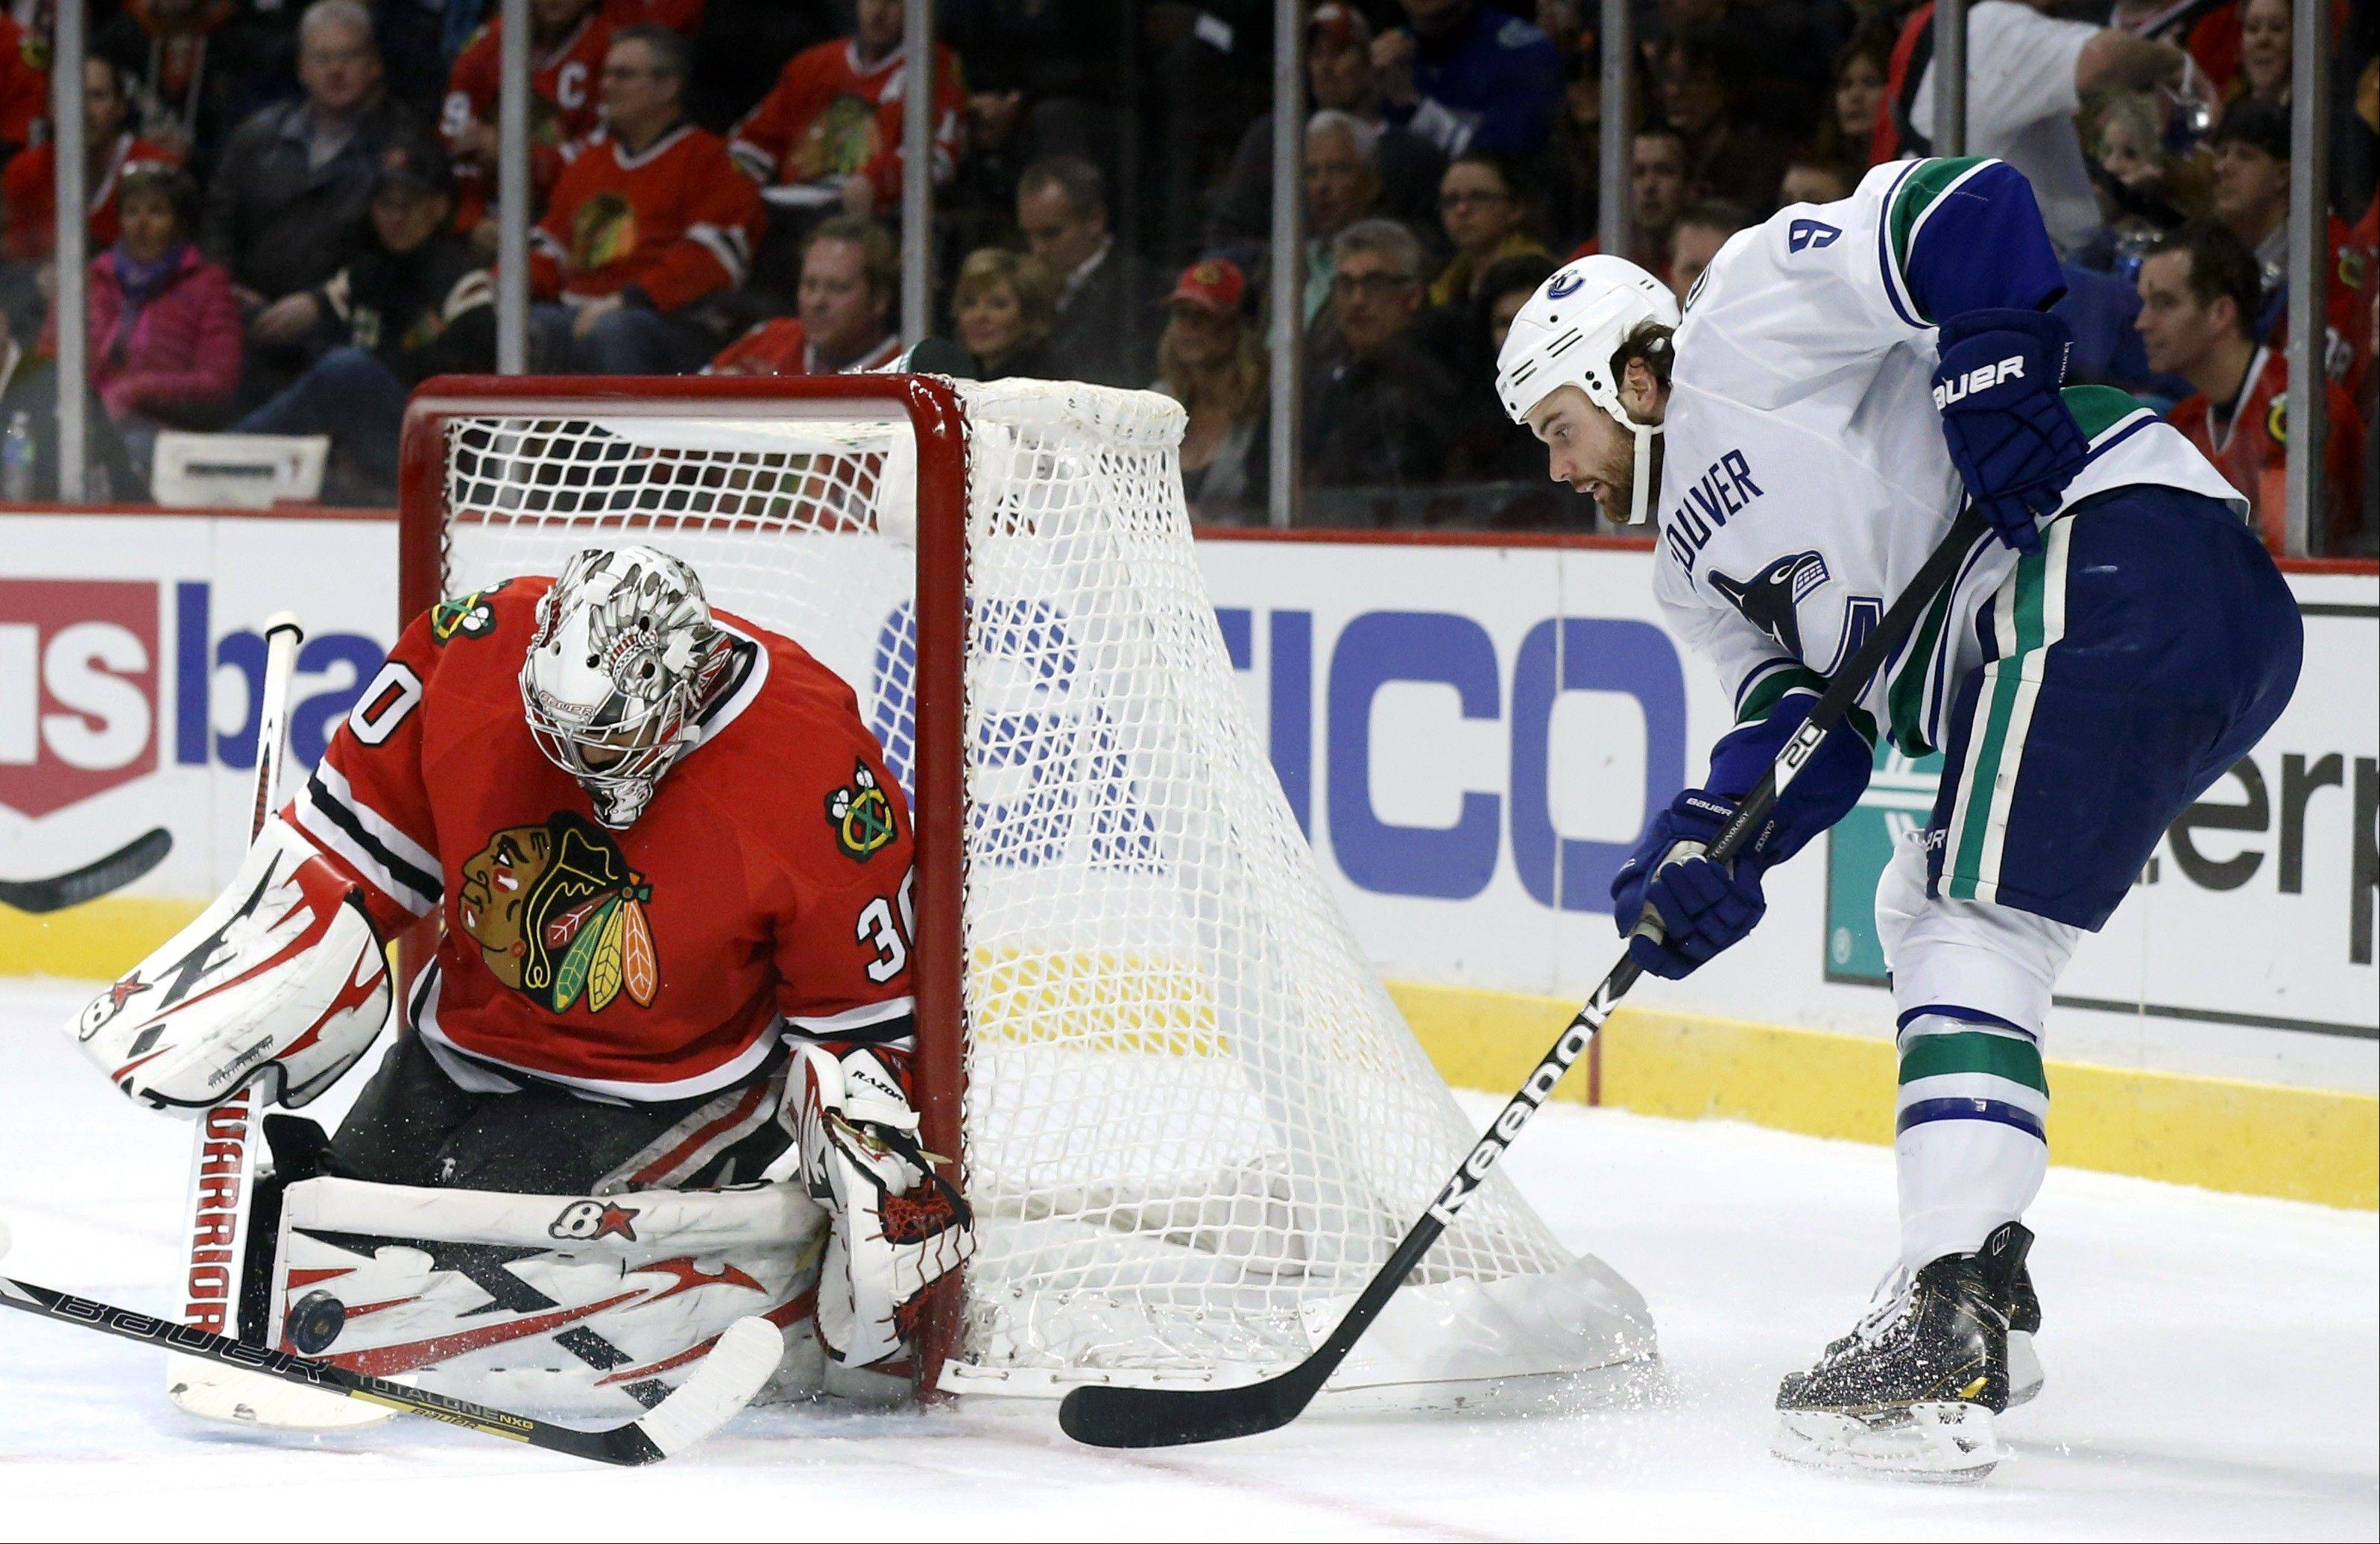 Vancouver Canucks right wing Zack Kassian, who started the season with the Chicago Wolves, tries to get off a shot Tuesday against Blackhawks goalie Ray Emery.